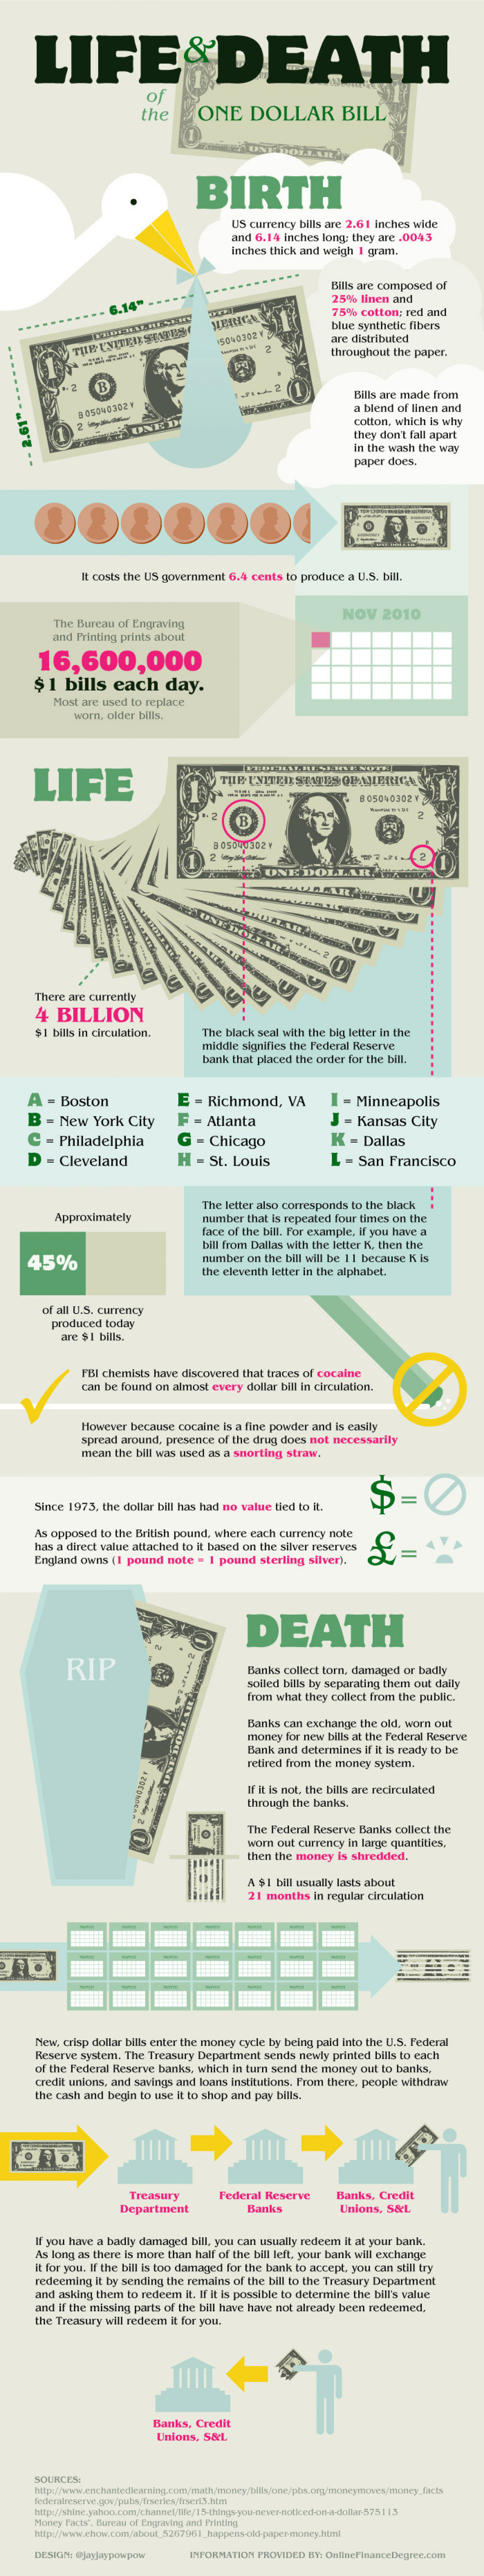 Life and Death of the One Dollar Bill Infographic